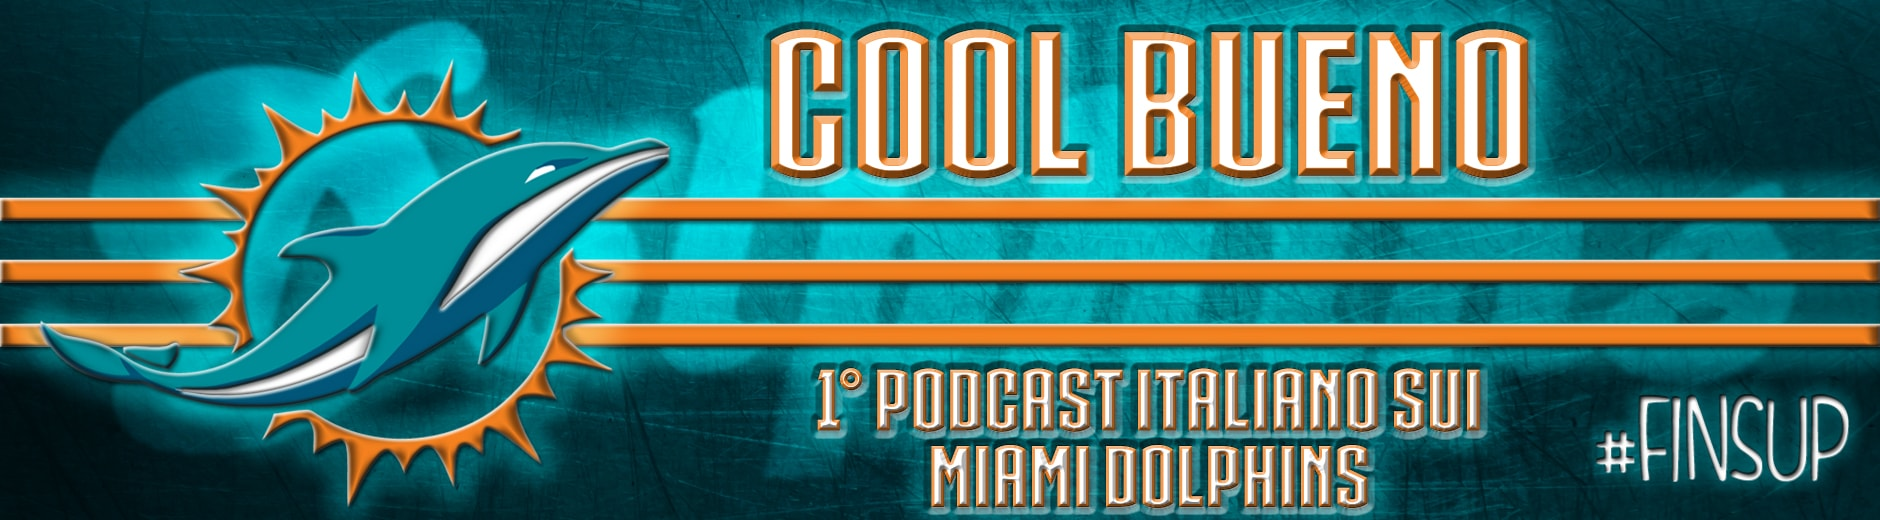 Cool Bueno S02E24 – Chiefs vs Dolphins